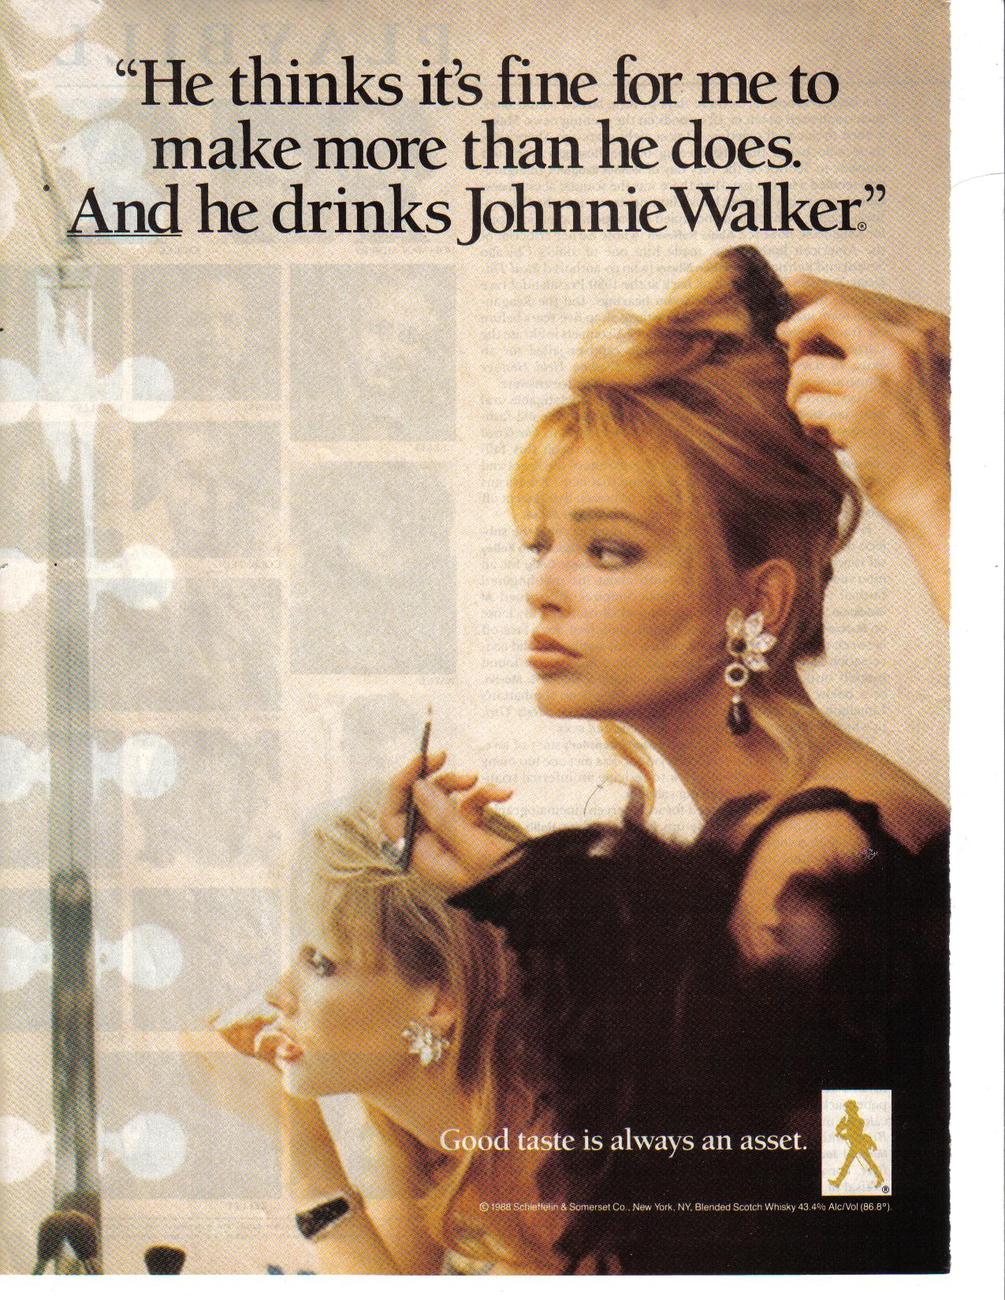 Johnnie Walker 2 Pages Color Print Ads From 1988 Original Collectible Very Good